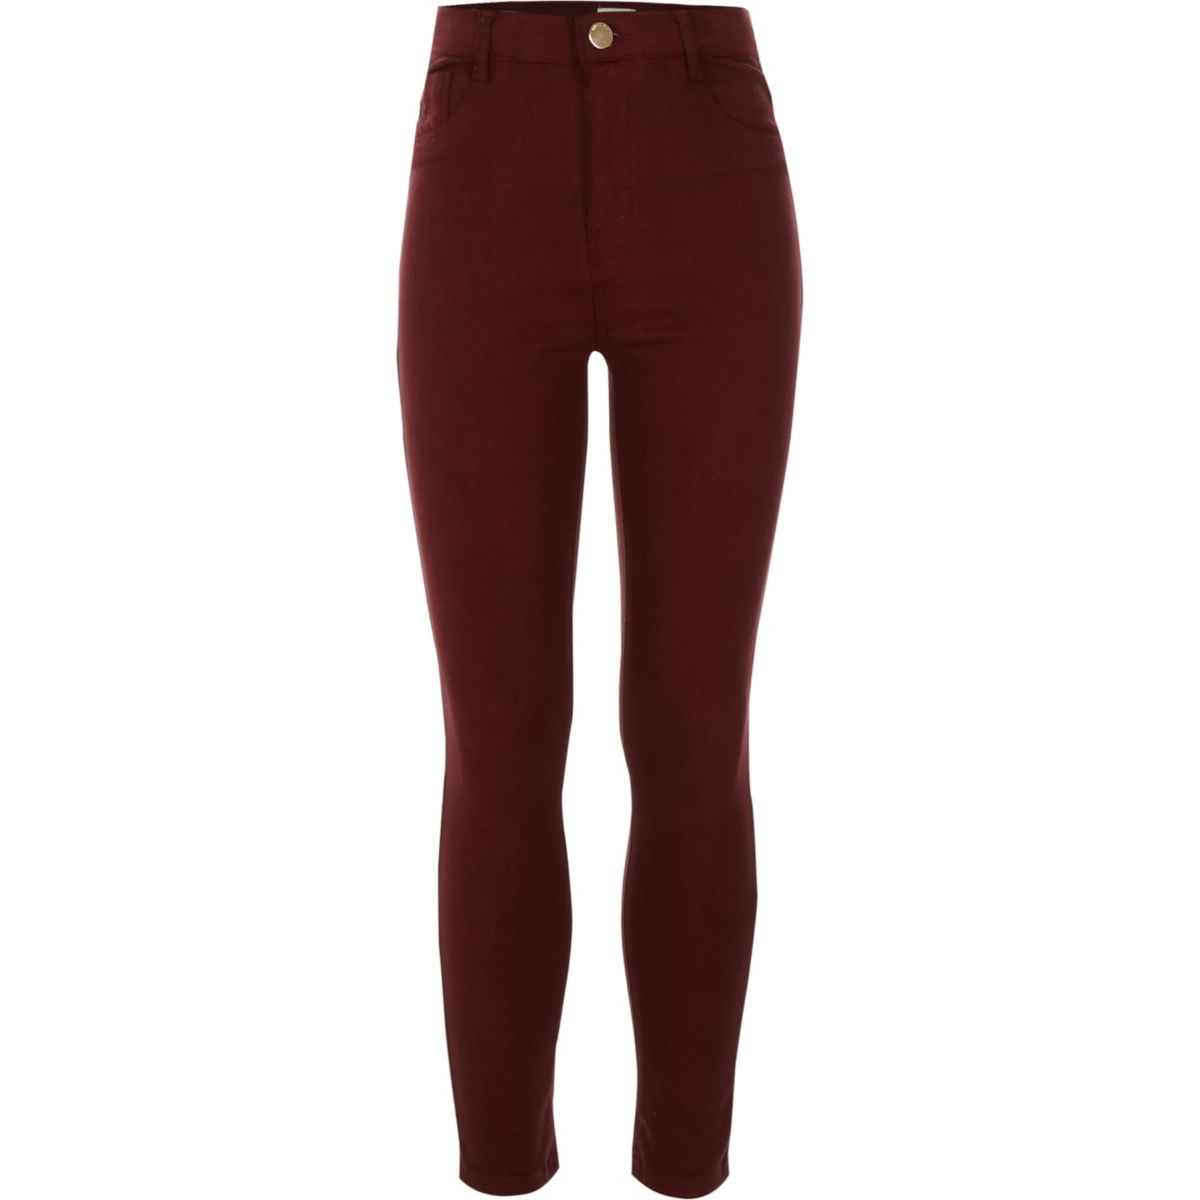 Girls dark red high rise Molly jeggings